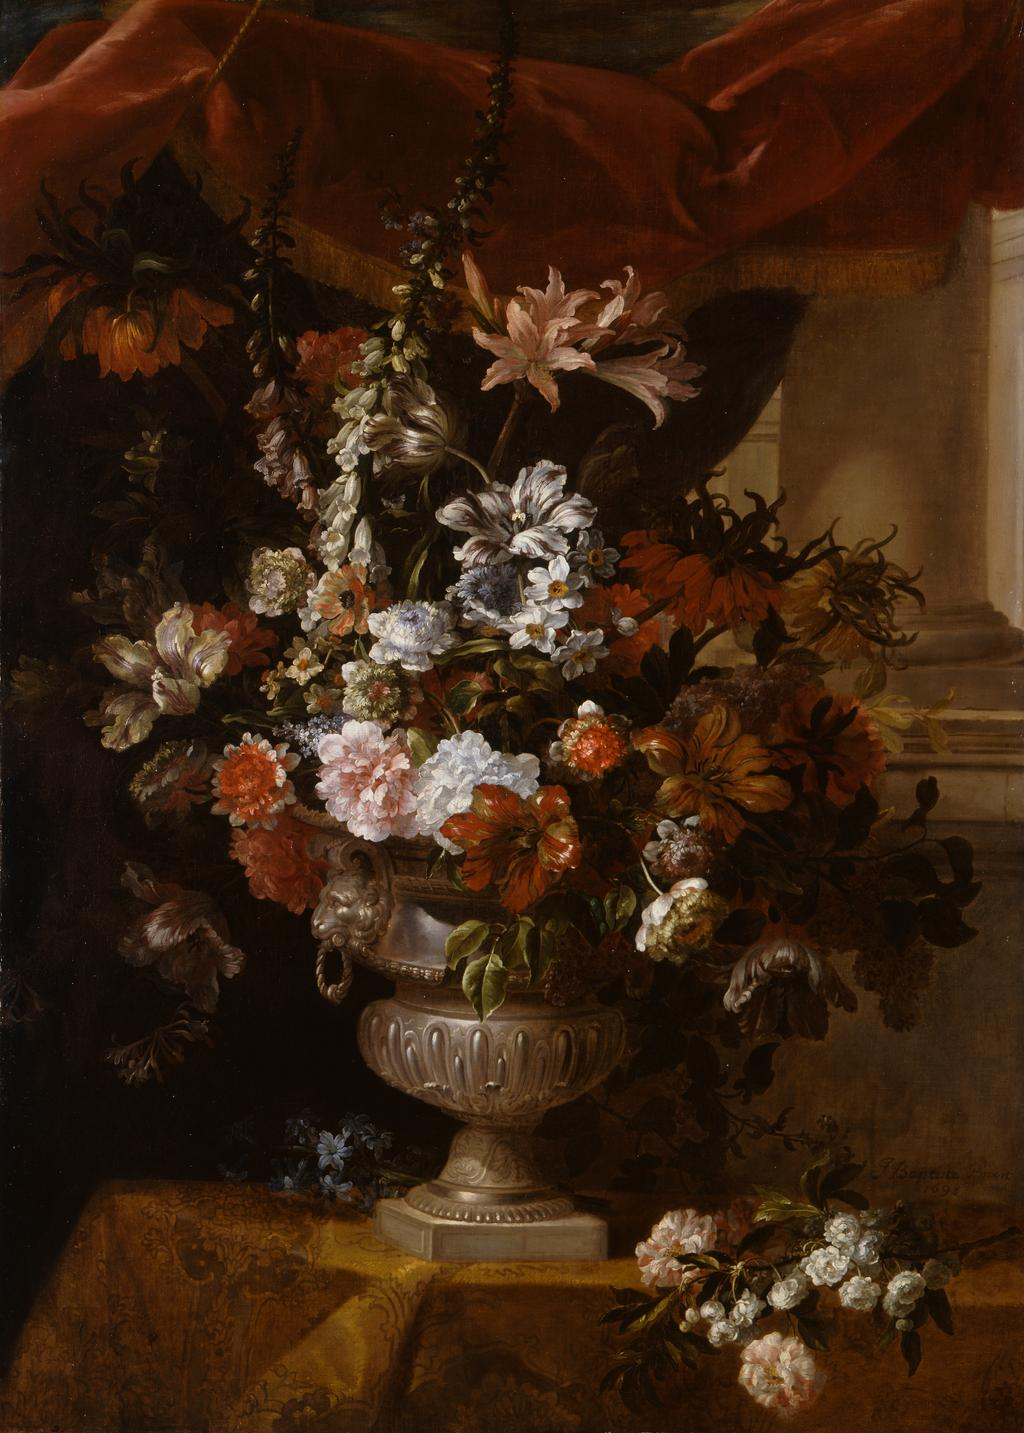 An image of An urn with flowers. Monnoyer, Jean-Baptiste I (French, 1636-1699). Oil on canvas, height 198.1 cm, width 116.9 cm, 1698.